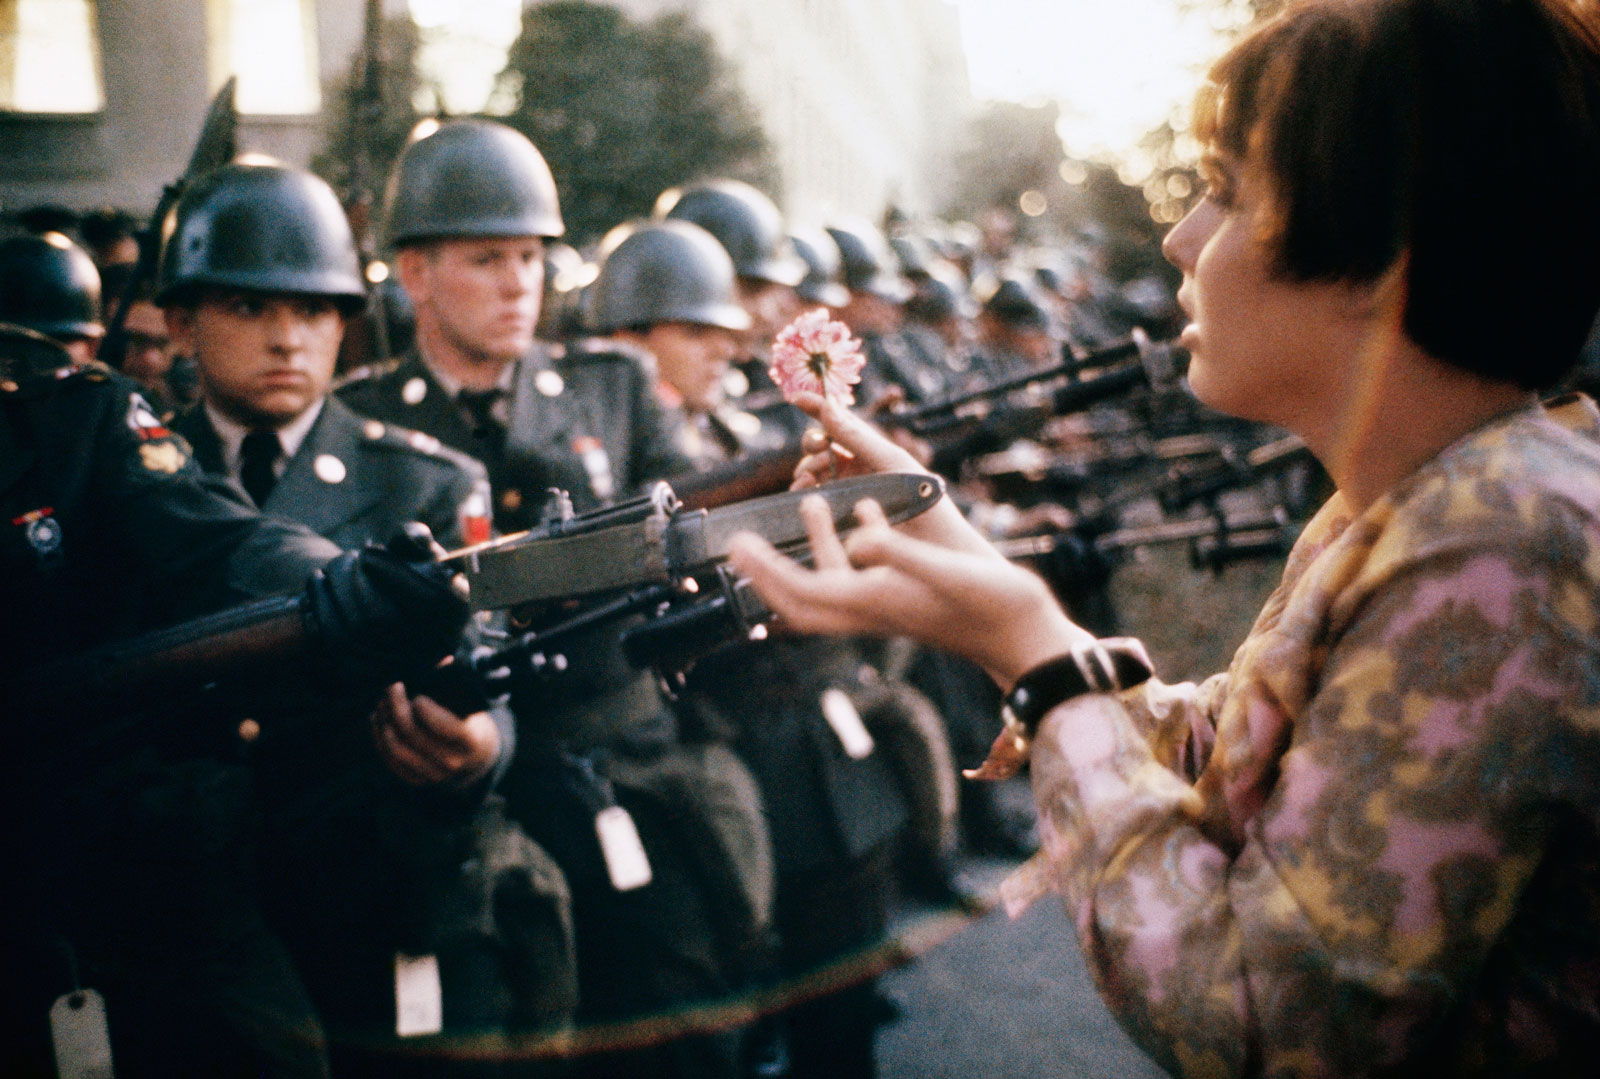 color image of a teenager holding a flower to the bayonets of police